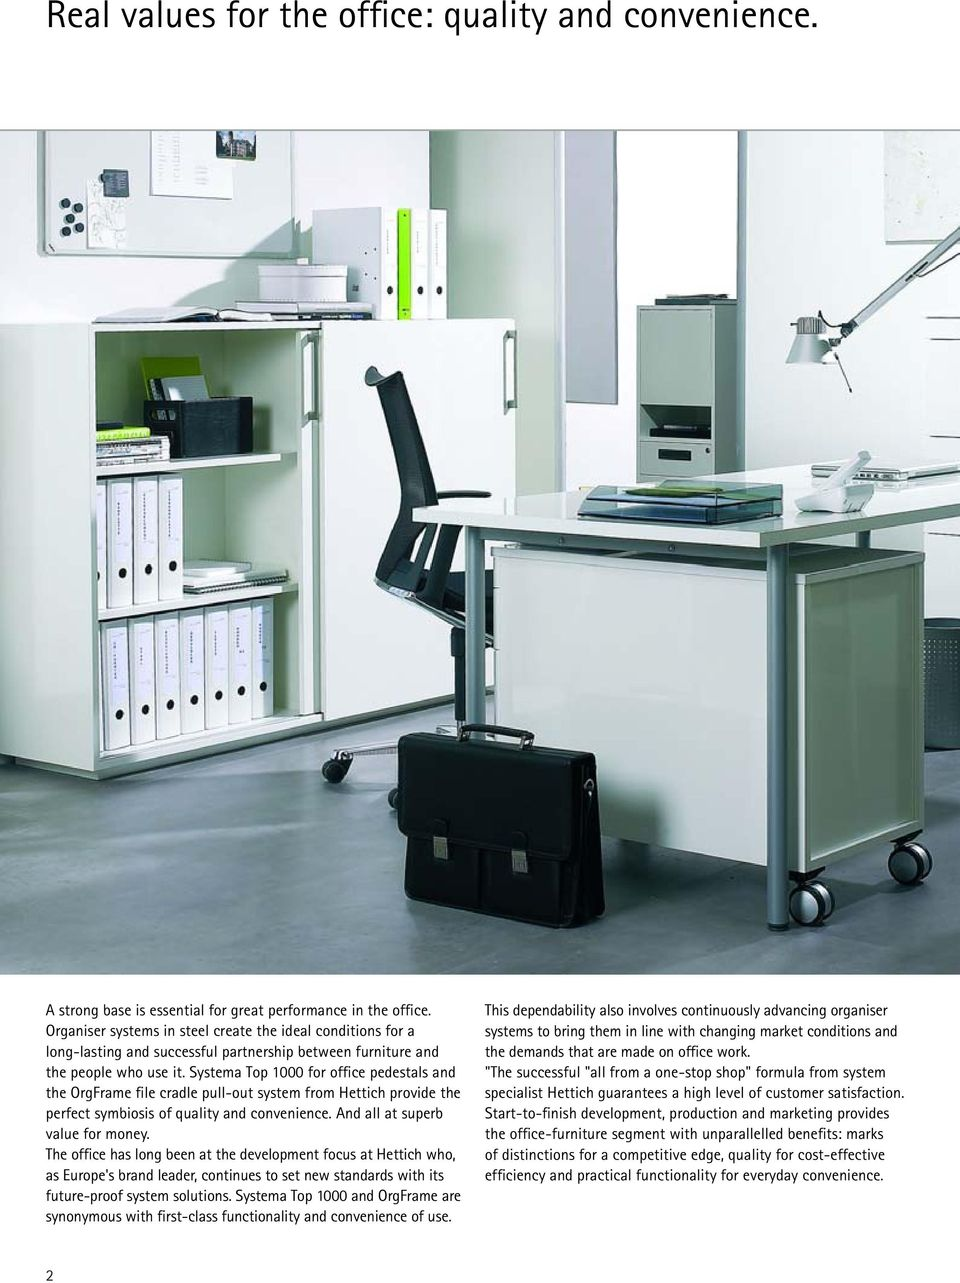 Systema Top 1000 for office pedestals and the OrgFrame file cradle pull-out system from Hettich provide the perfect symbiosis of quality and convenience. And all at superb value for money.